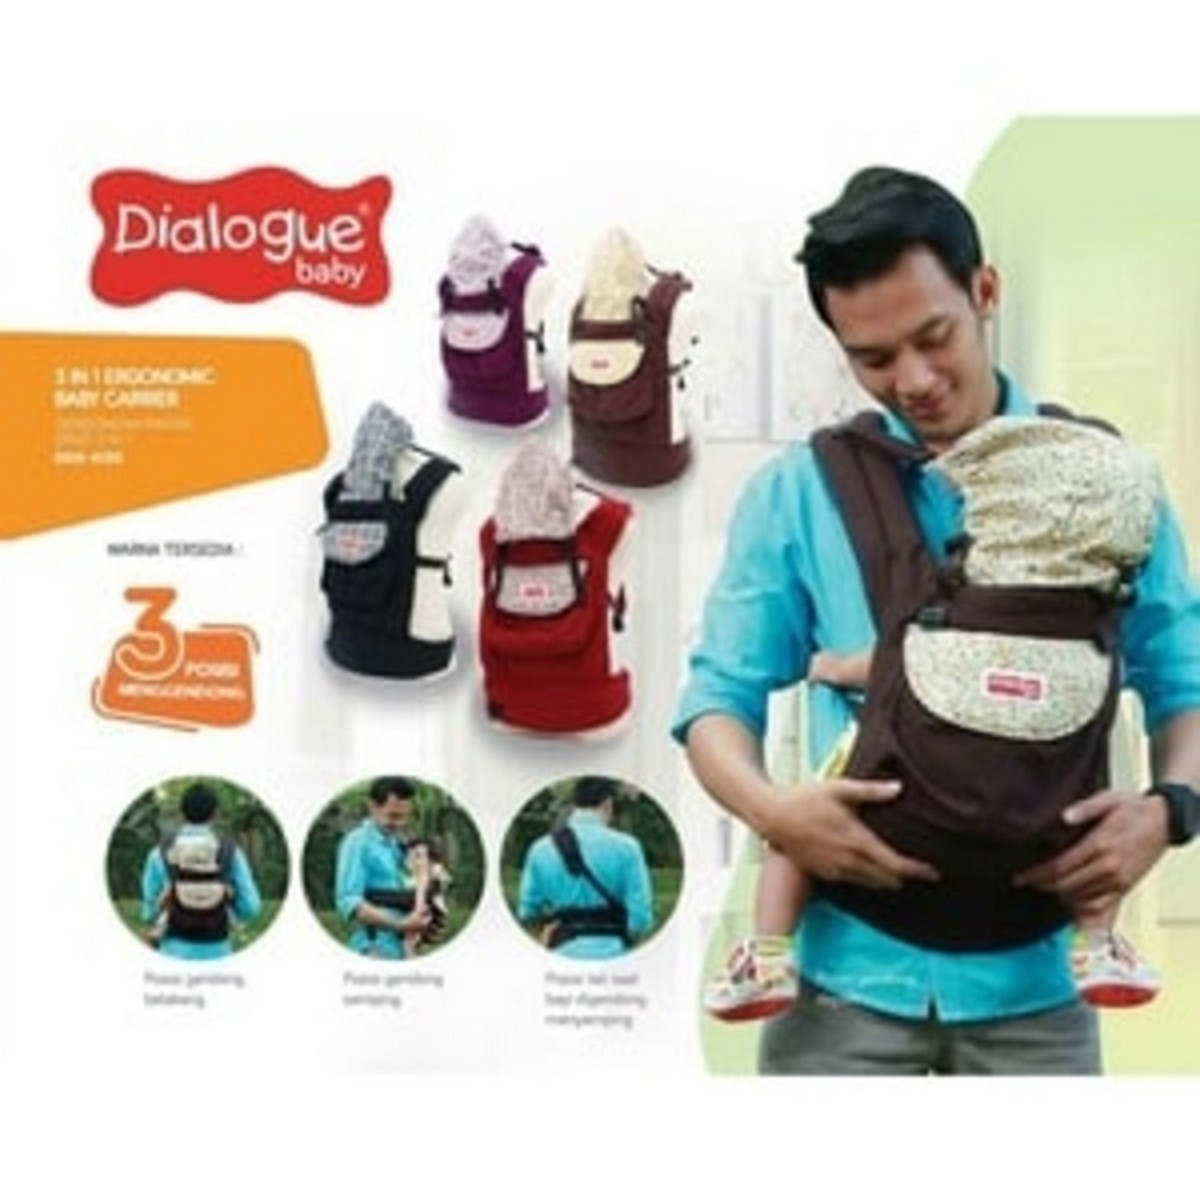 harga (Limited) DIALOGUE BABY CARRIER/ GENDONGAN BAYI RANSEL ERGO 3IN1 DGG4130 elevenia.co.id